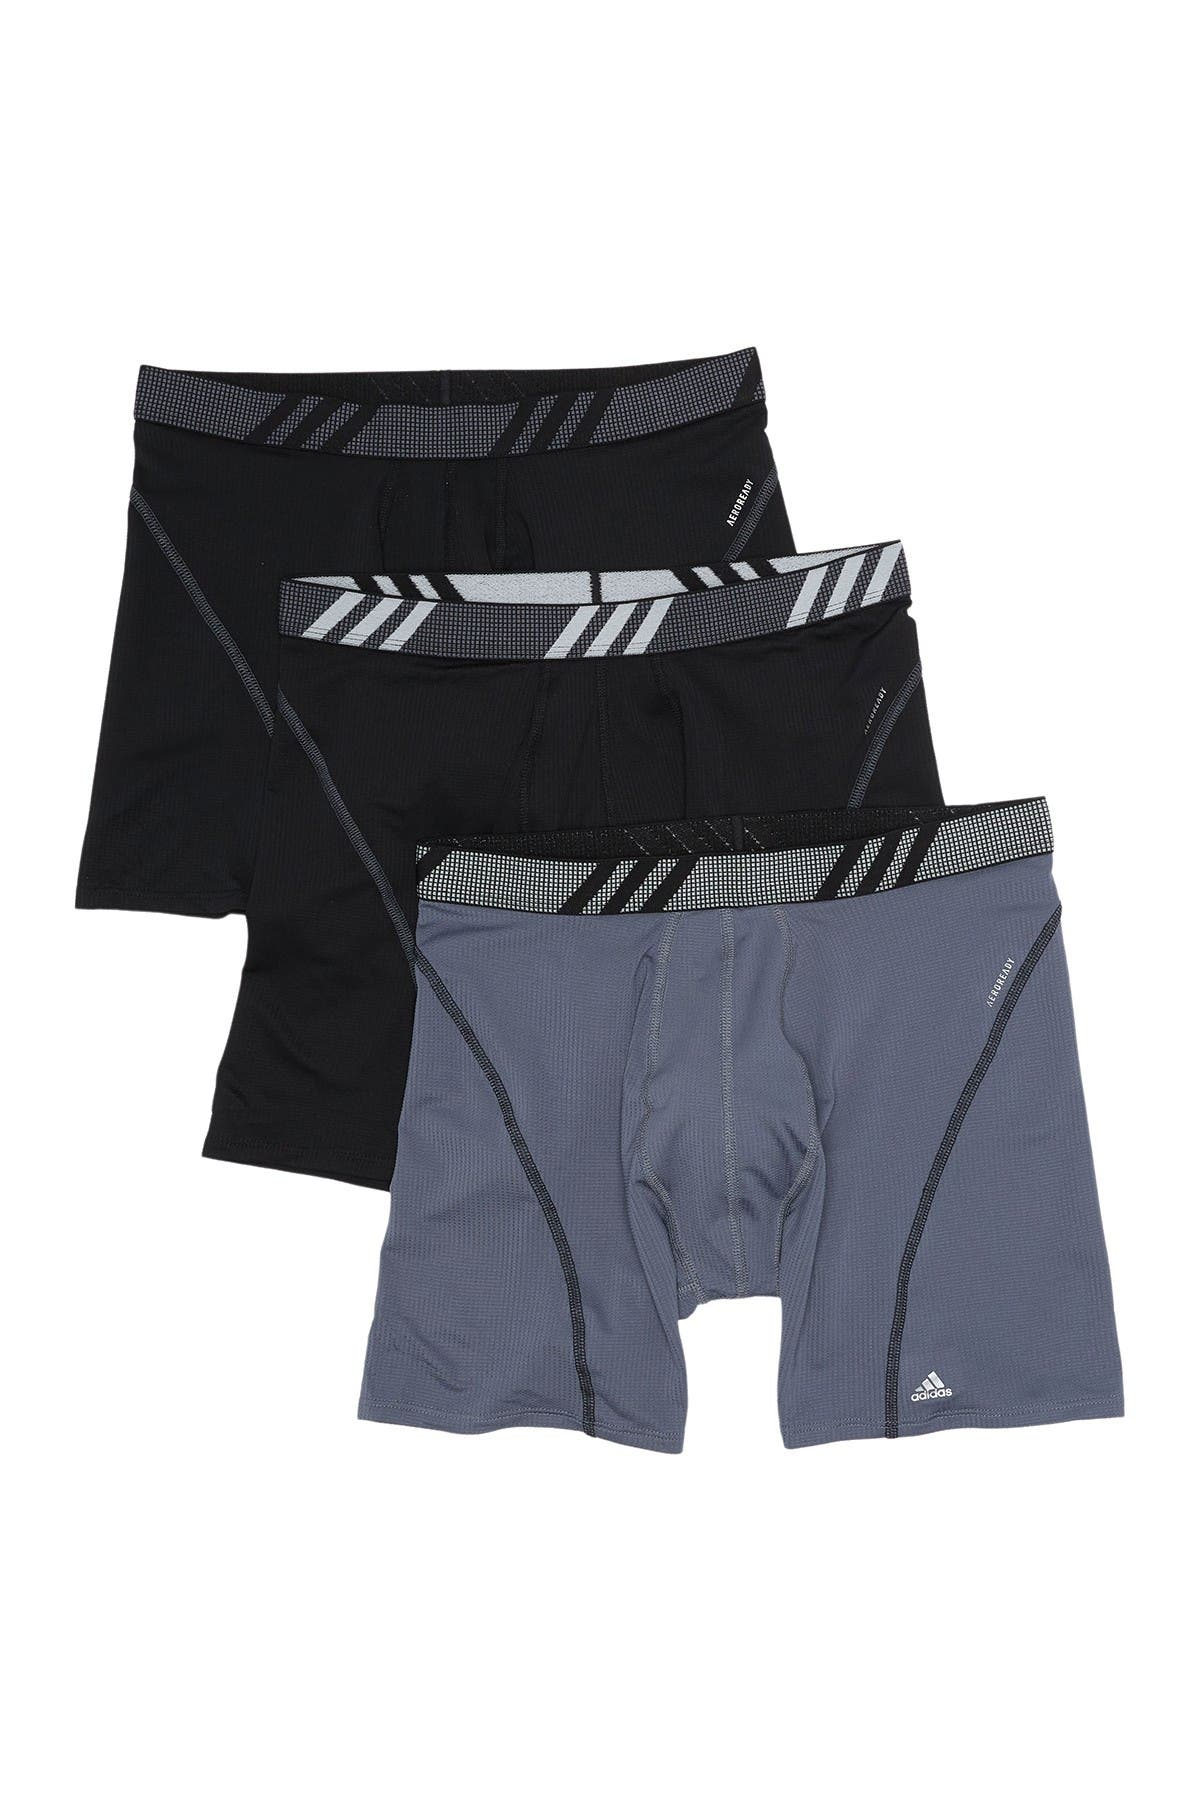 Image of adidas Sport Performance Mesh Boxers - Pack of 3